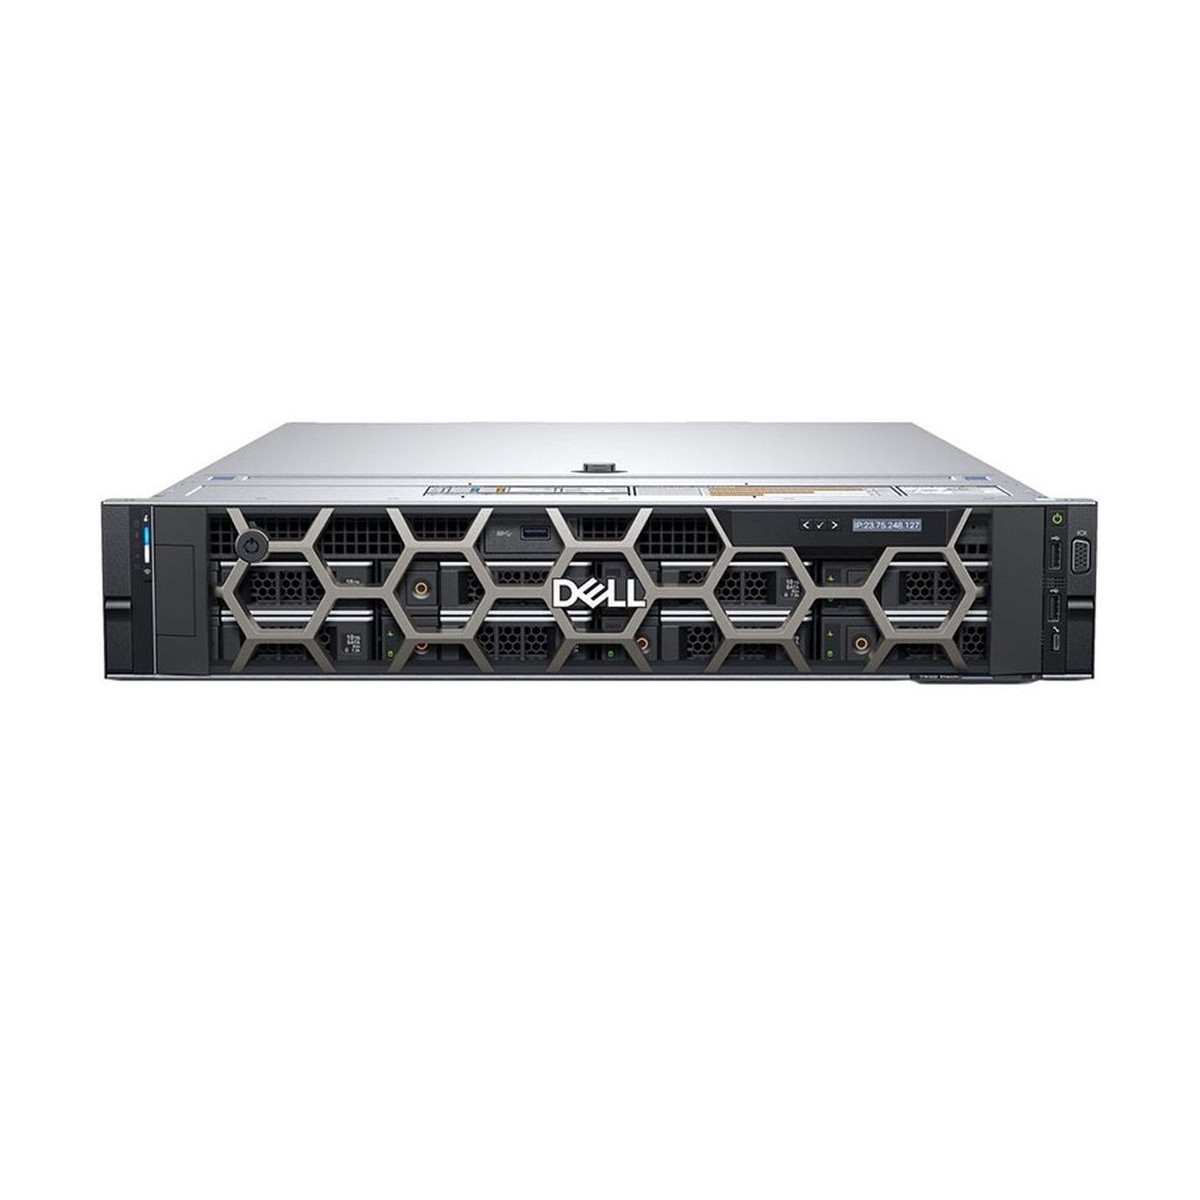 HP DL580 G7 4x2.0 10-CORE 64GB 2x146SAS 2x1TB SATA